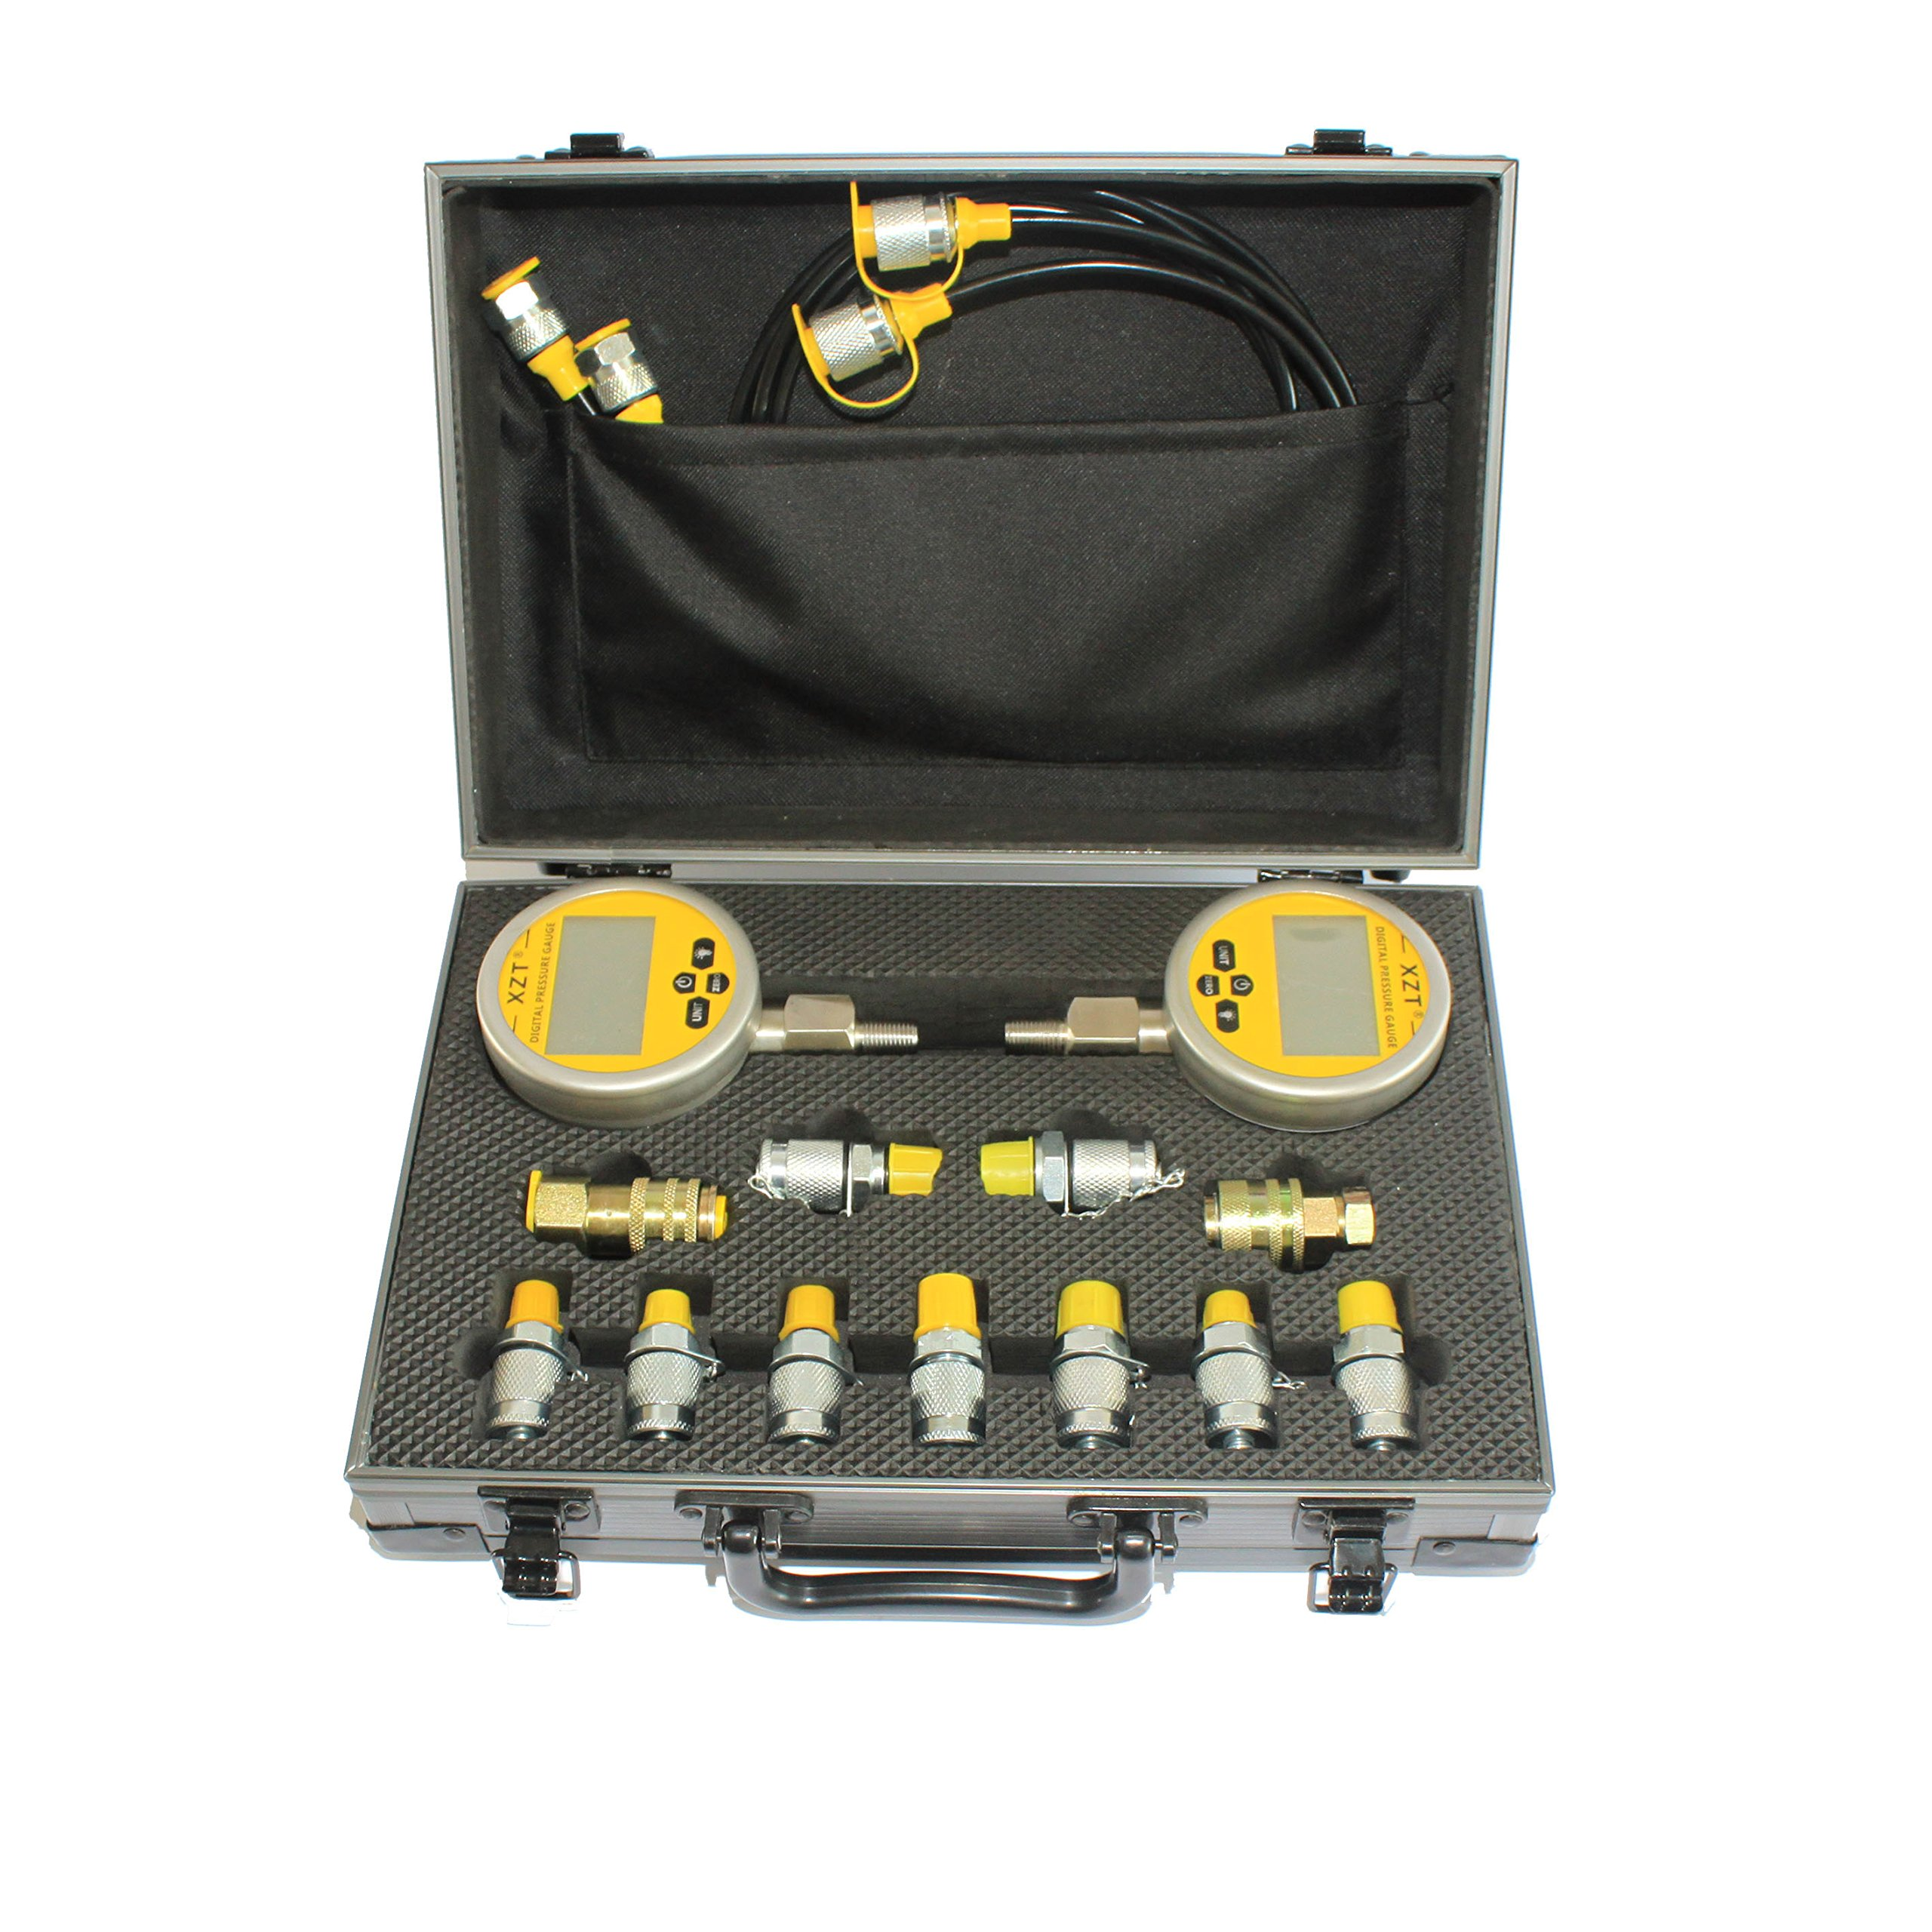 XZT 70md Digital Hydraulic Pressure Test Coupling Kit for Excavator Construction Machinery